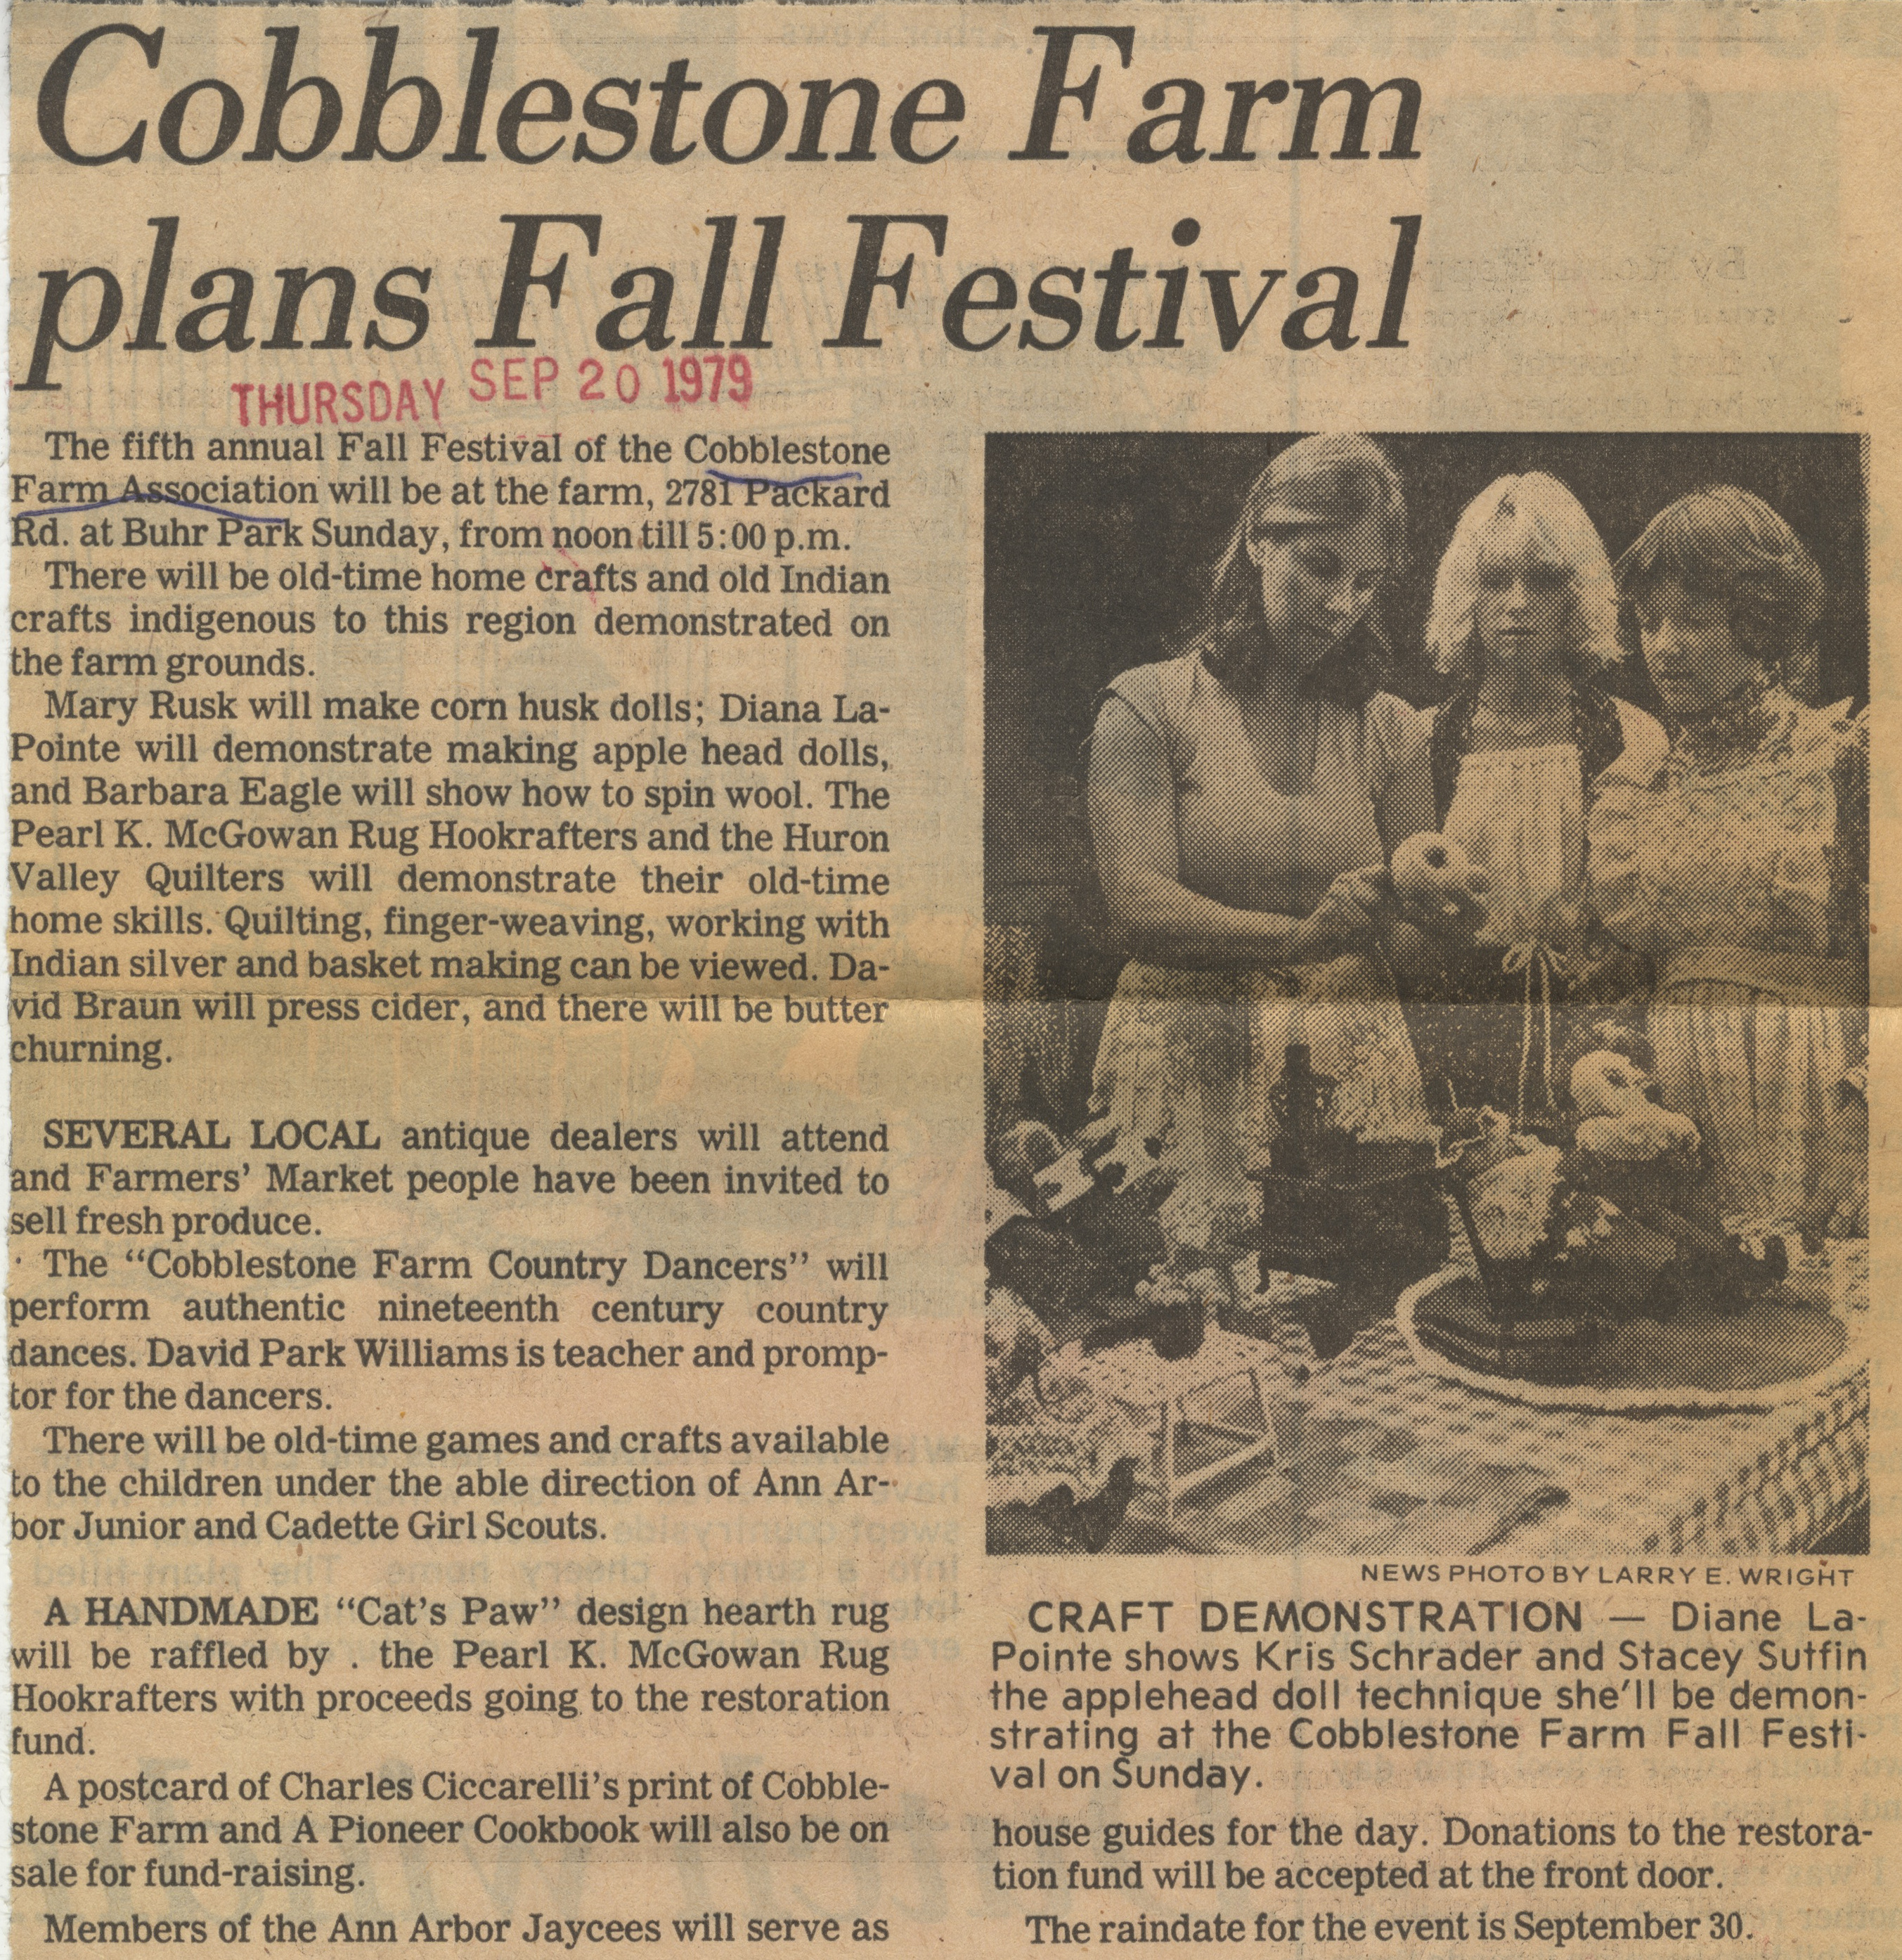 Cobblestone Farm Plans Fall Festival image